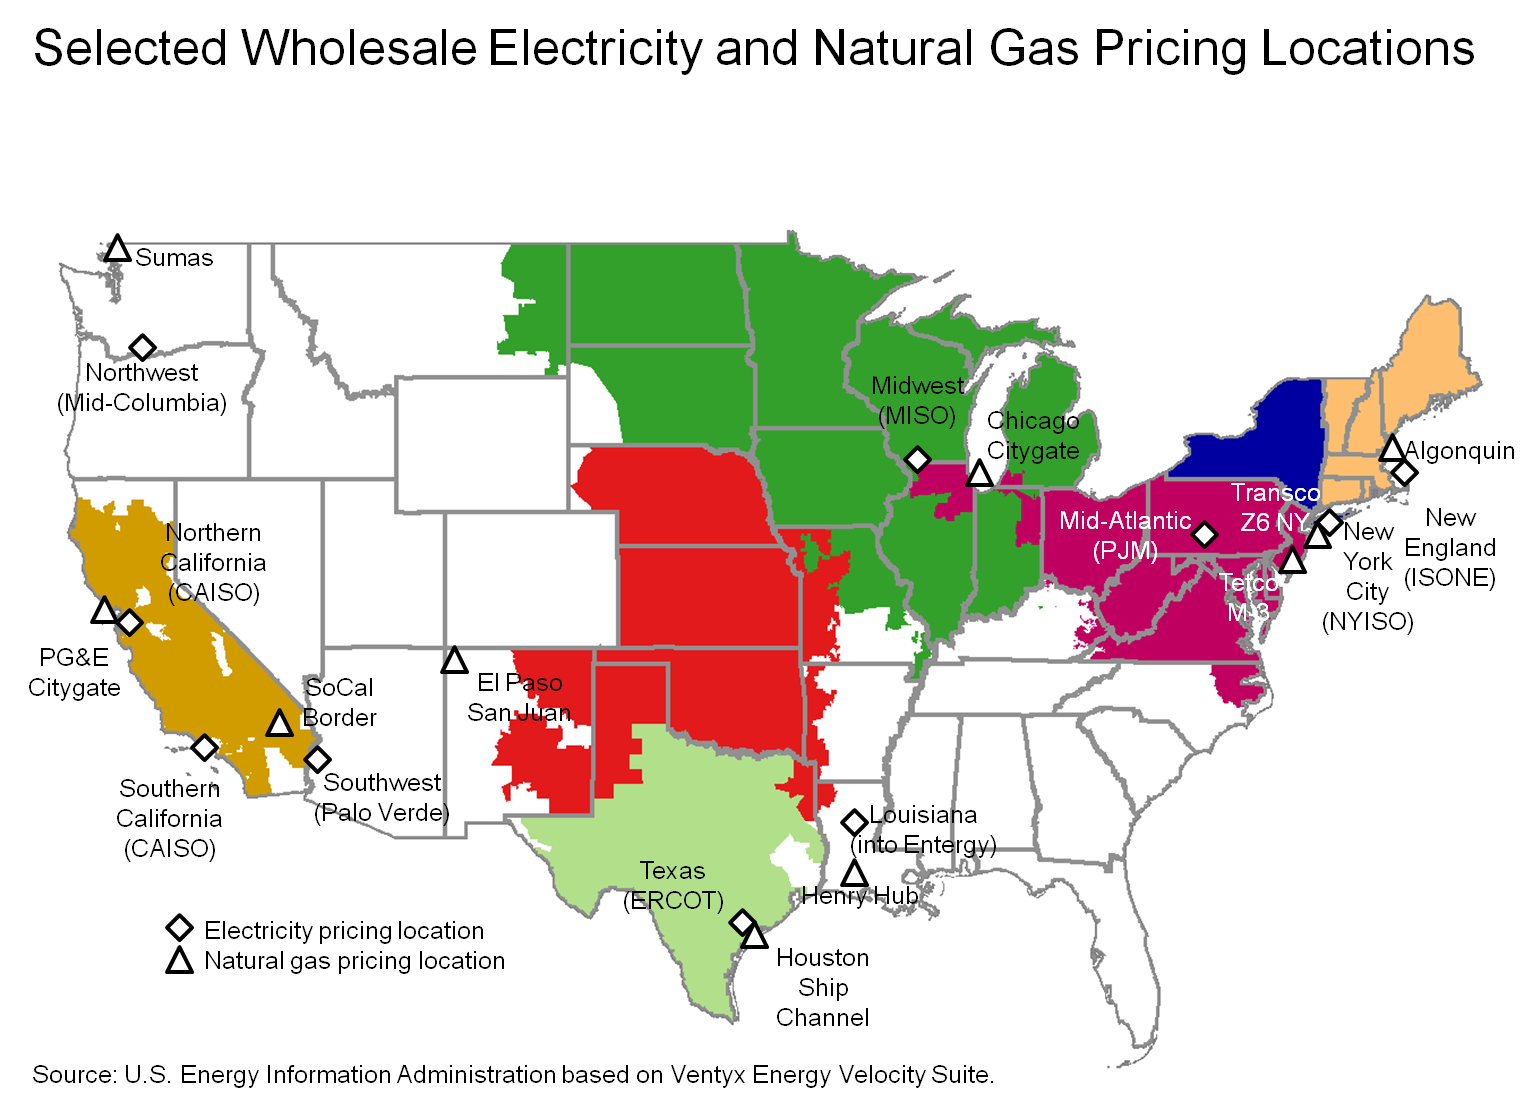 Selected Wholesale Electricity And Natural Gas Pricing Locations